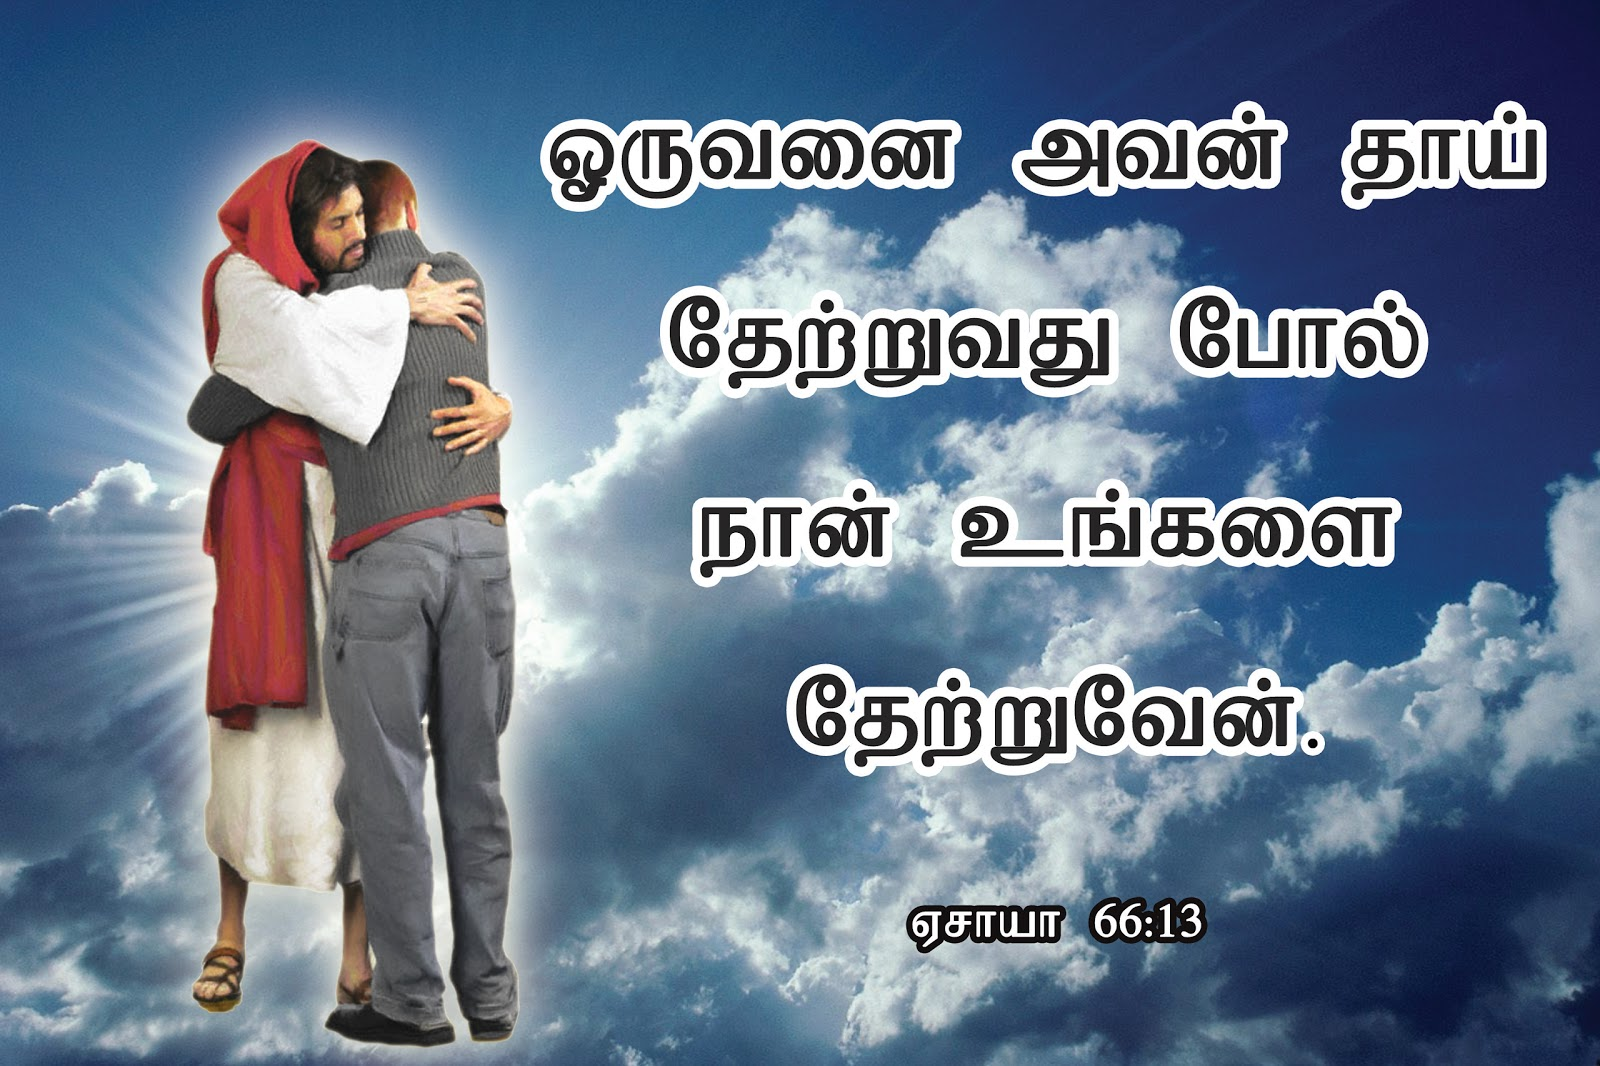 Jesus wallpapers with bible verses in tamil